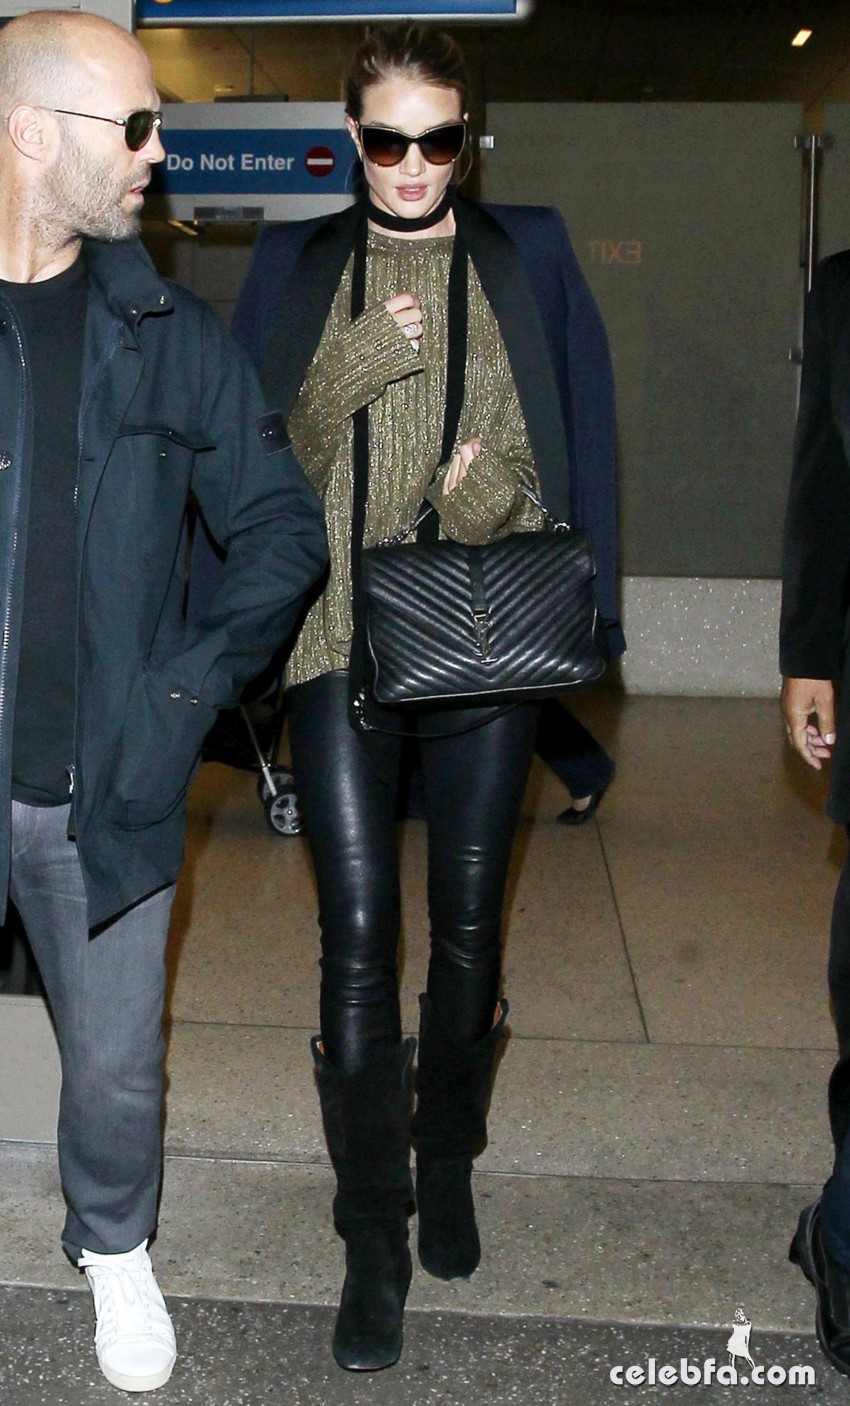 rosie-huntington-whiteley-and-jason-statham-at-los-angeles-international-airport (2)